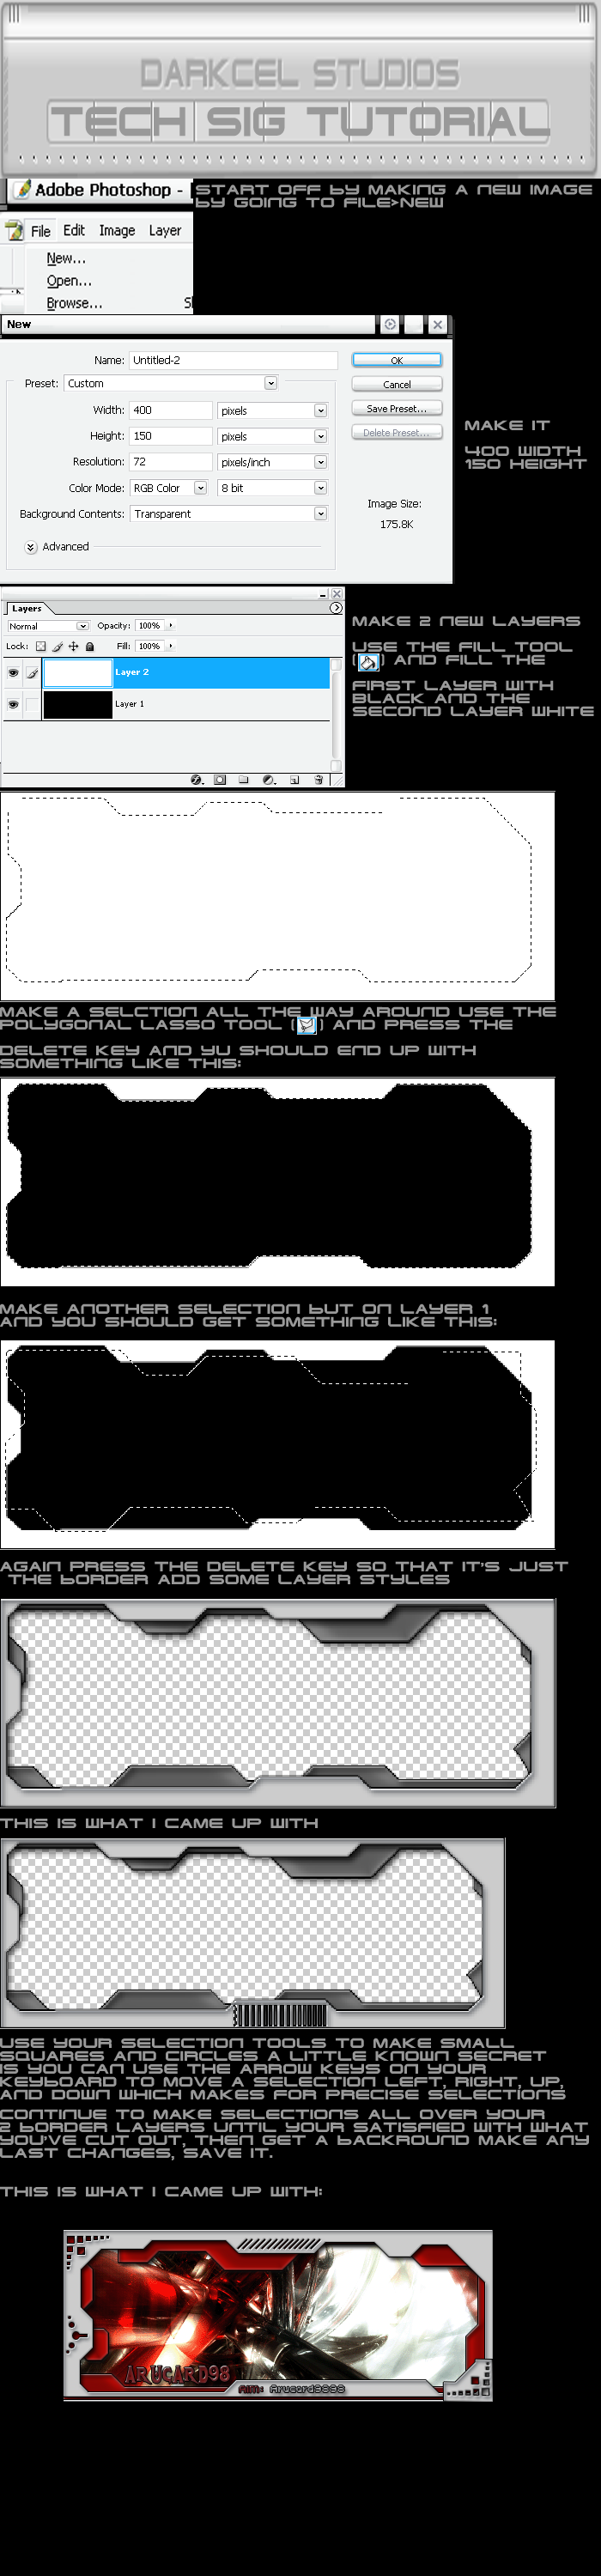 Tech signature border by arucard98 on deviantart tech signature border by arucard98 tech signature border by arucard98 baditri Images